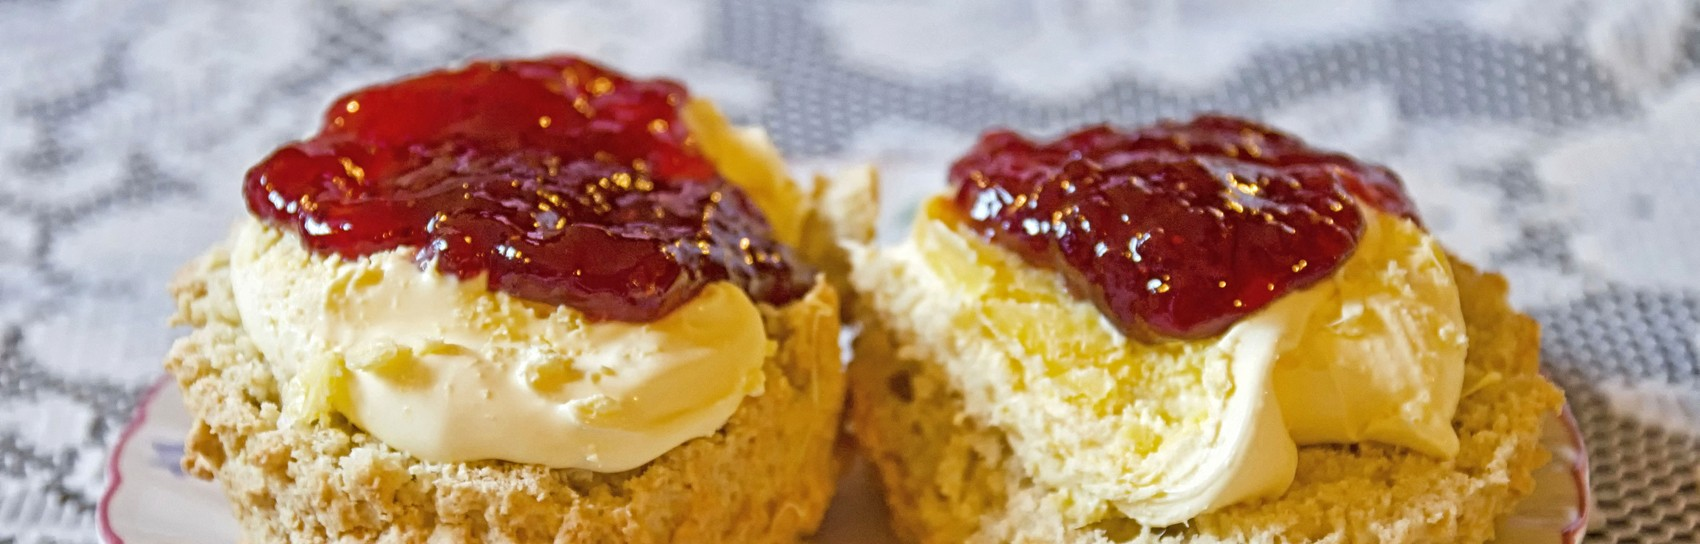 Scones with Clotted Cream and Jam. Photograph by ALEX GRAEME